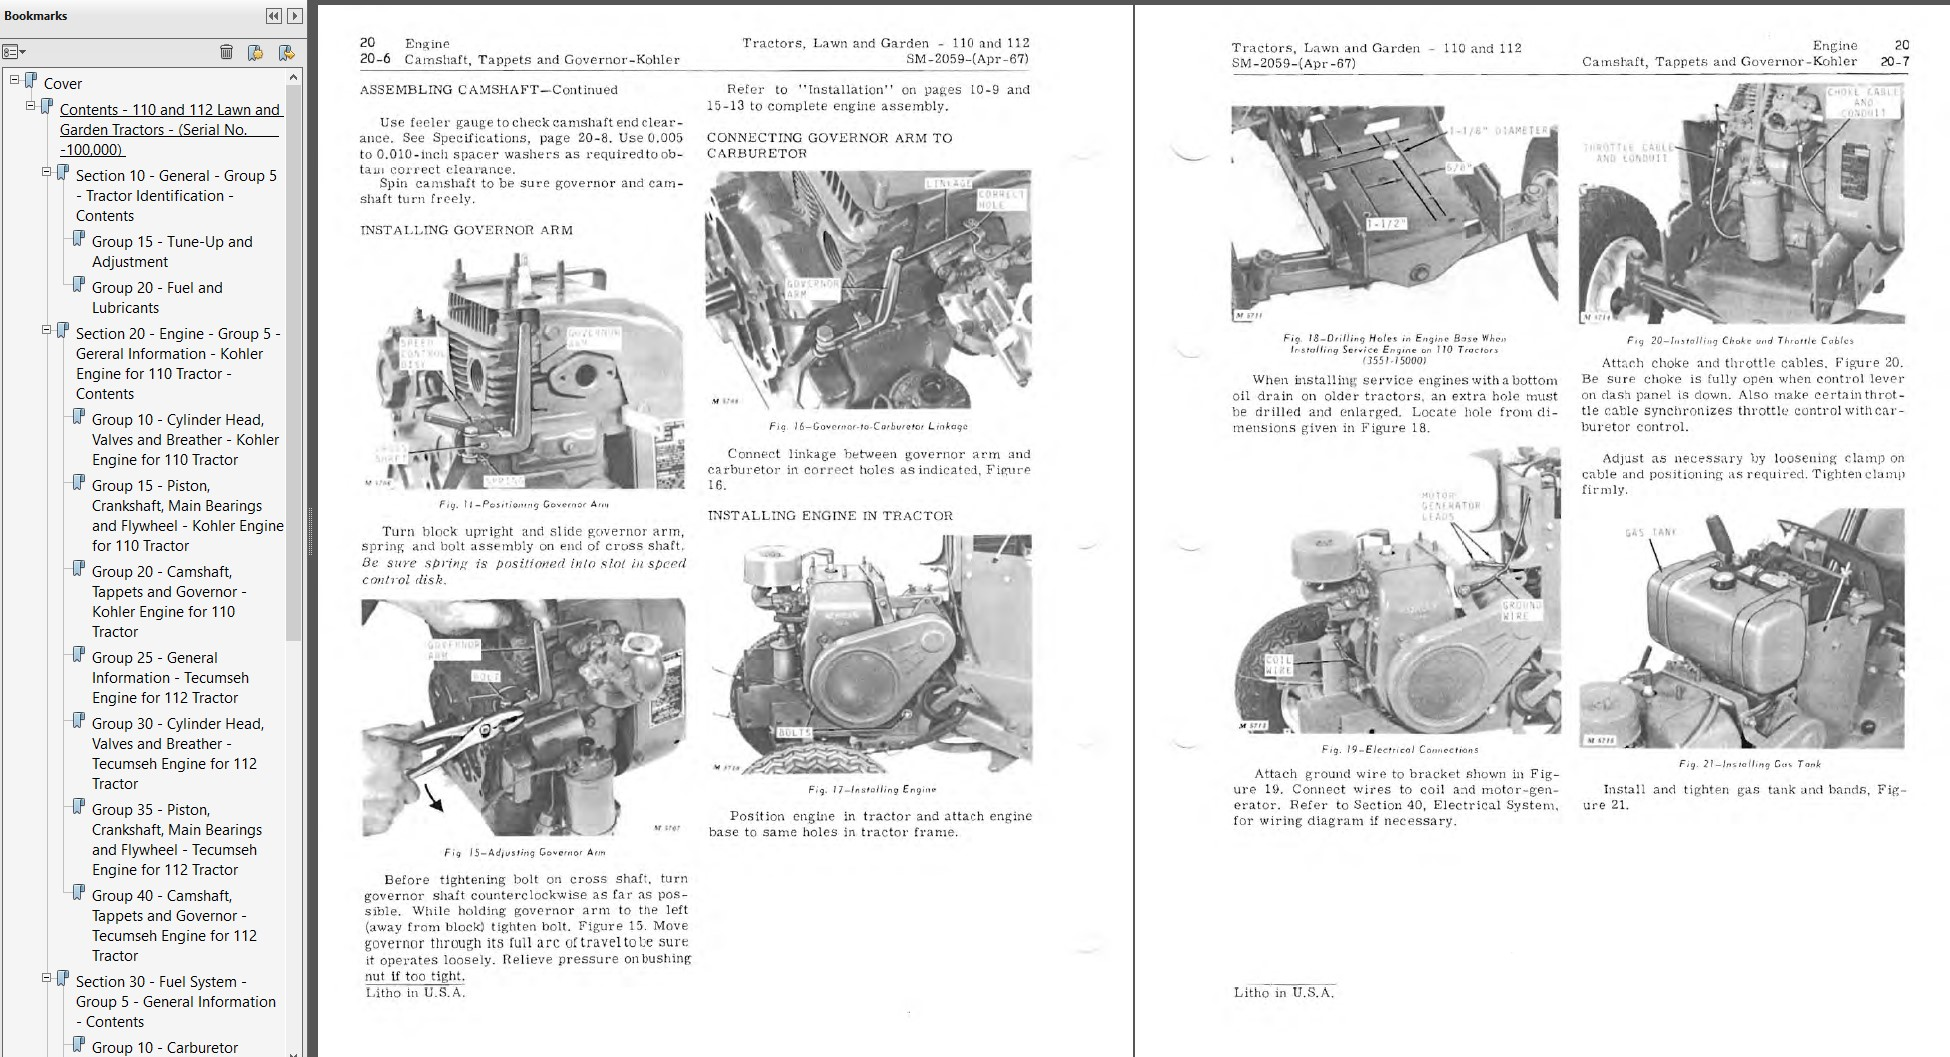 John Deere 110, 112 Lawn and Garden Tractor Service Manual